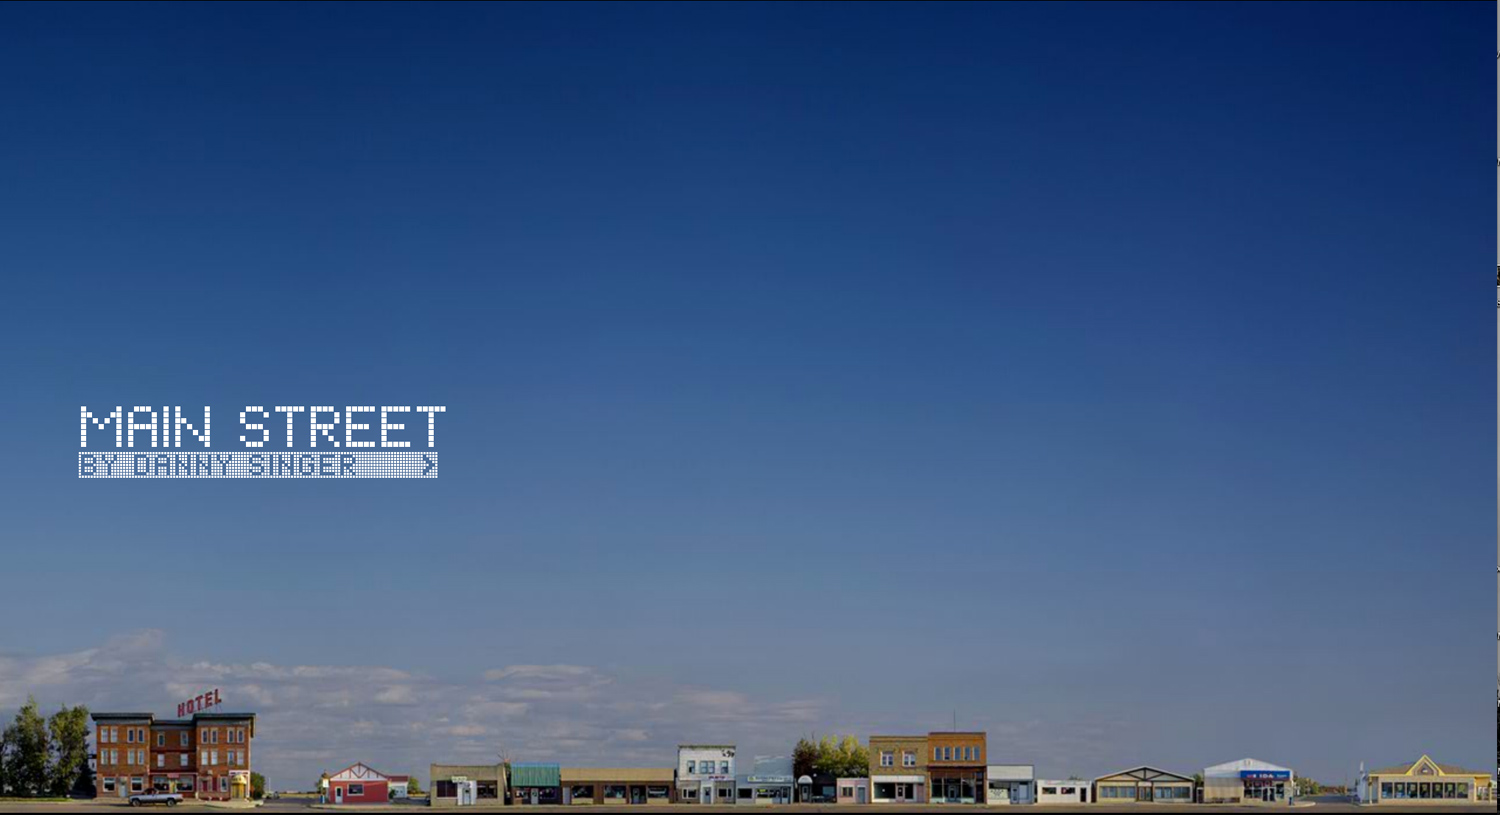 A screen capture from Main Street by Danny Singer. This site walks visitors through a giant panoramic photograph of the town.